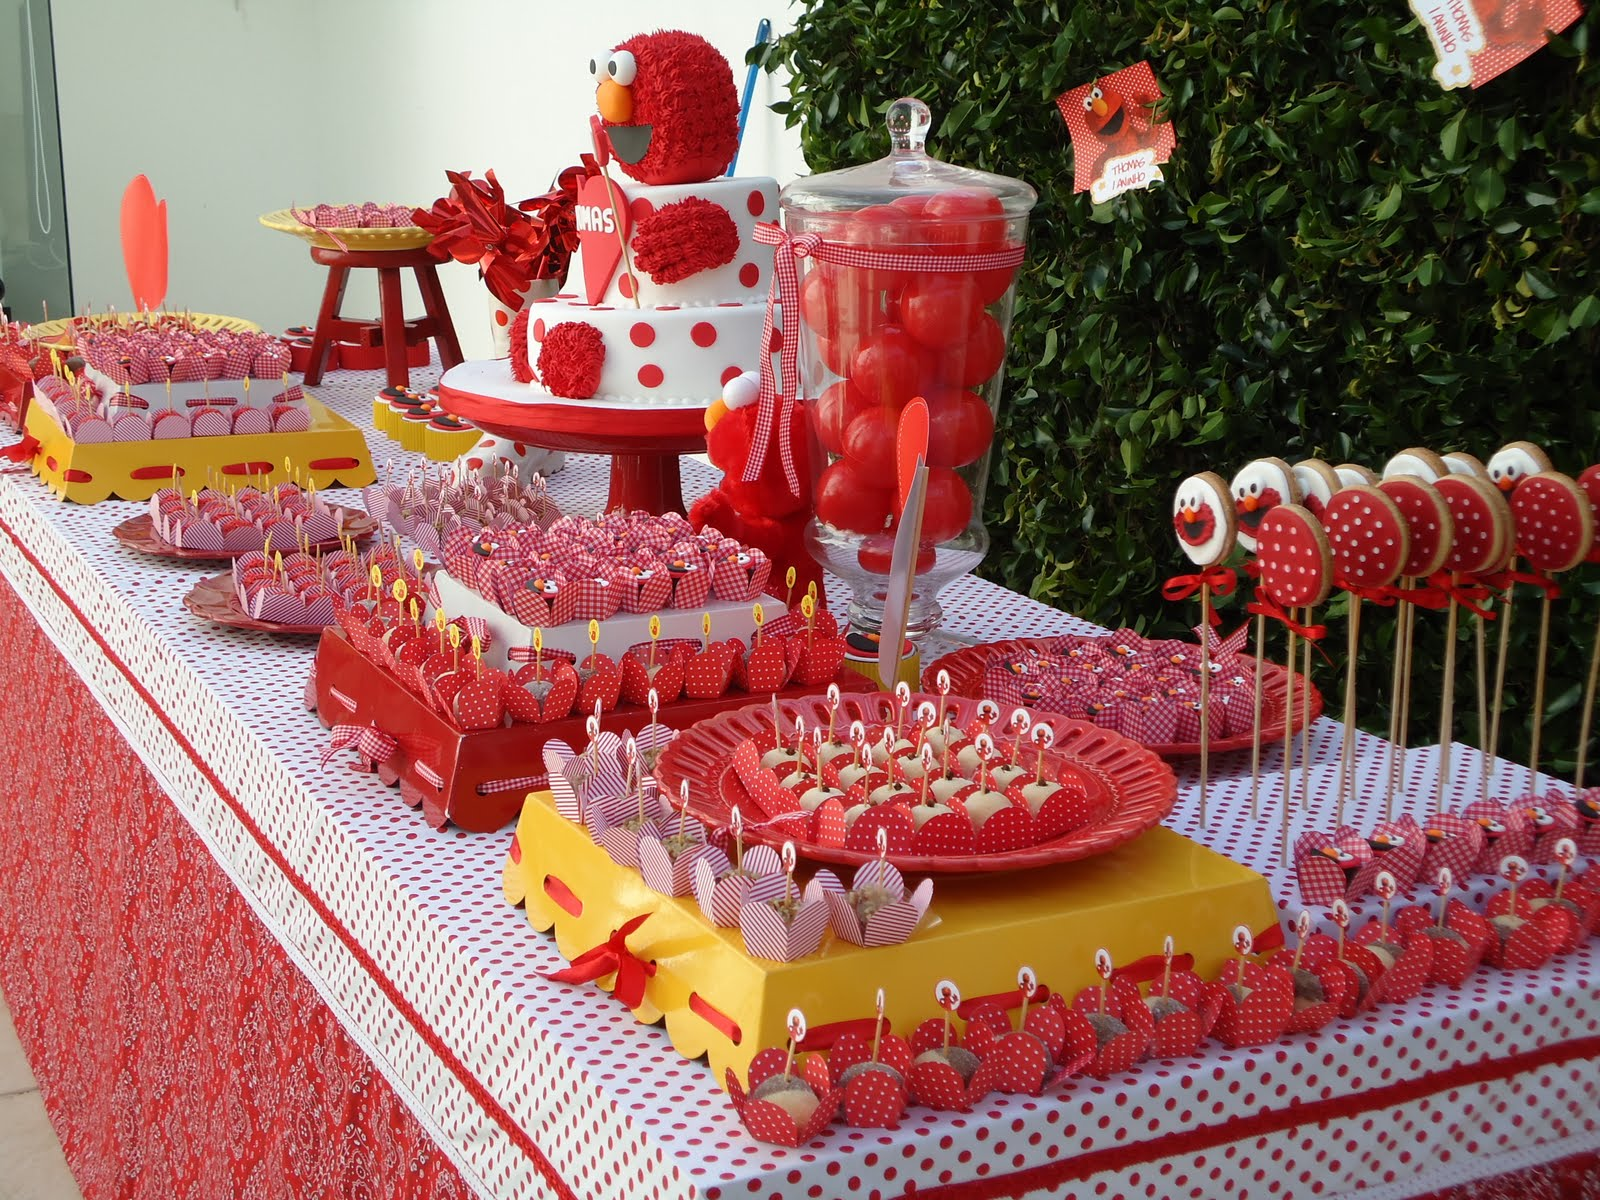 Browse our wide range of kids party supplies and pick from hundreds of exciting themes! Make their day extra special with party decorations, personalised cakes and .